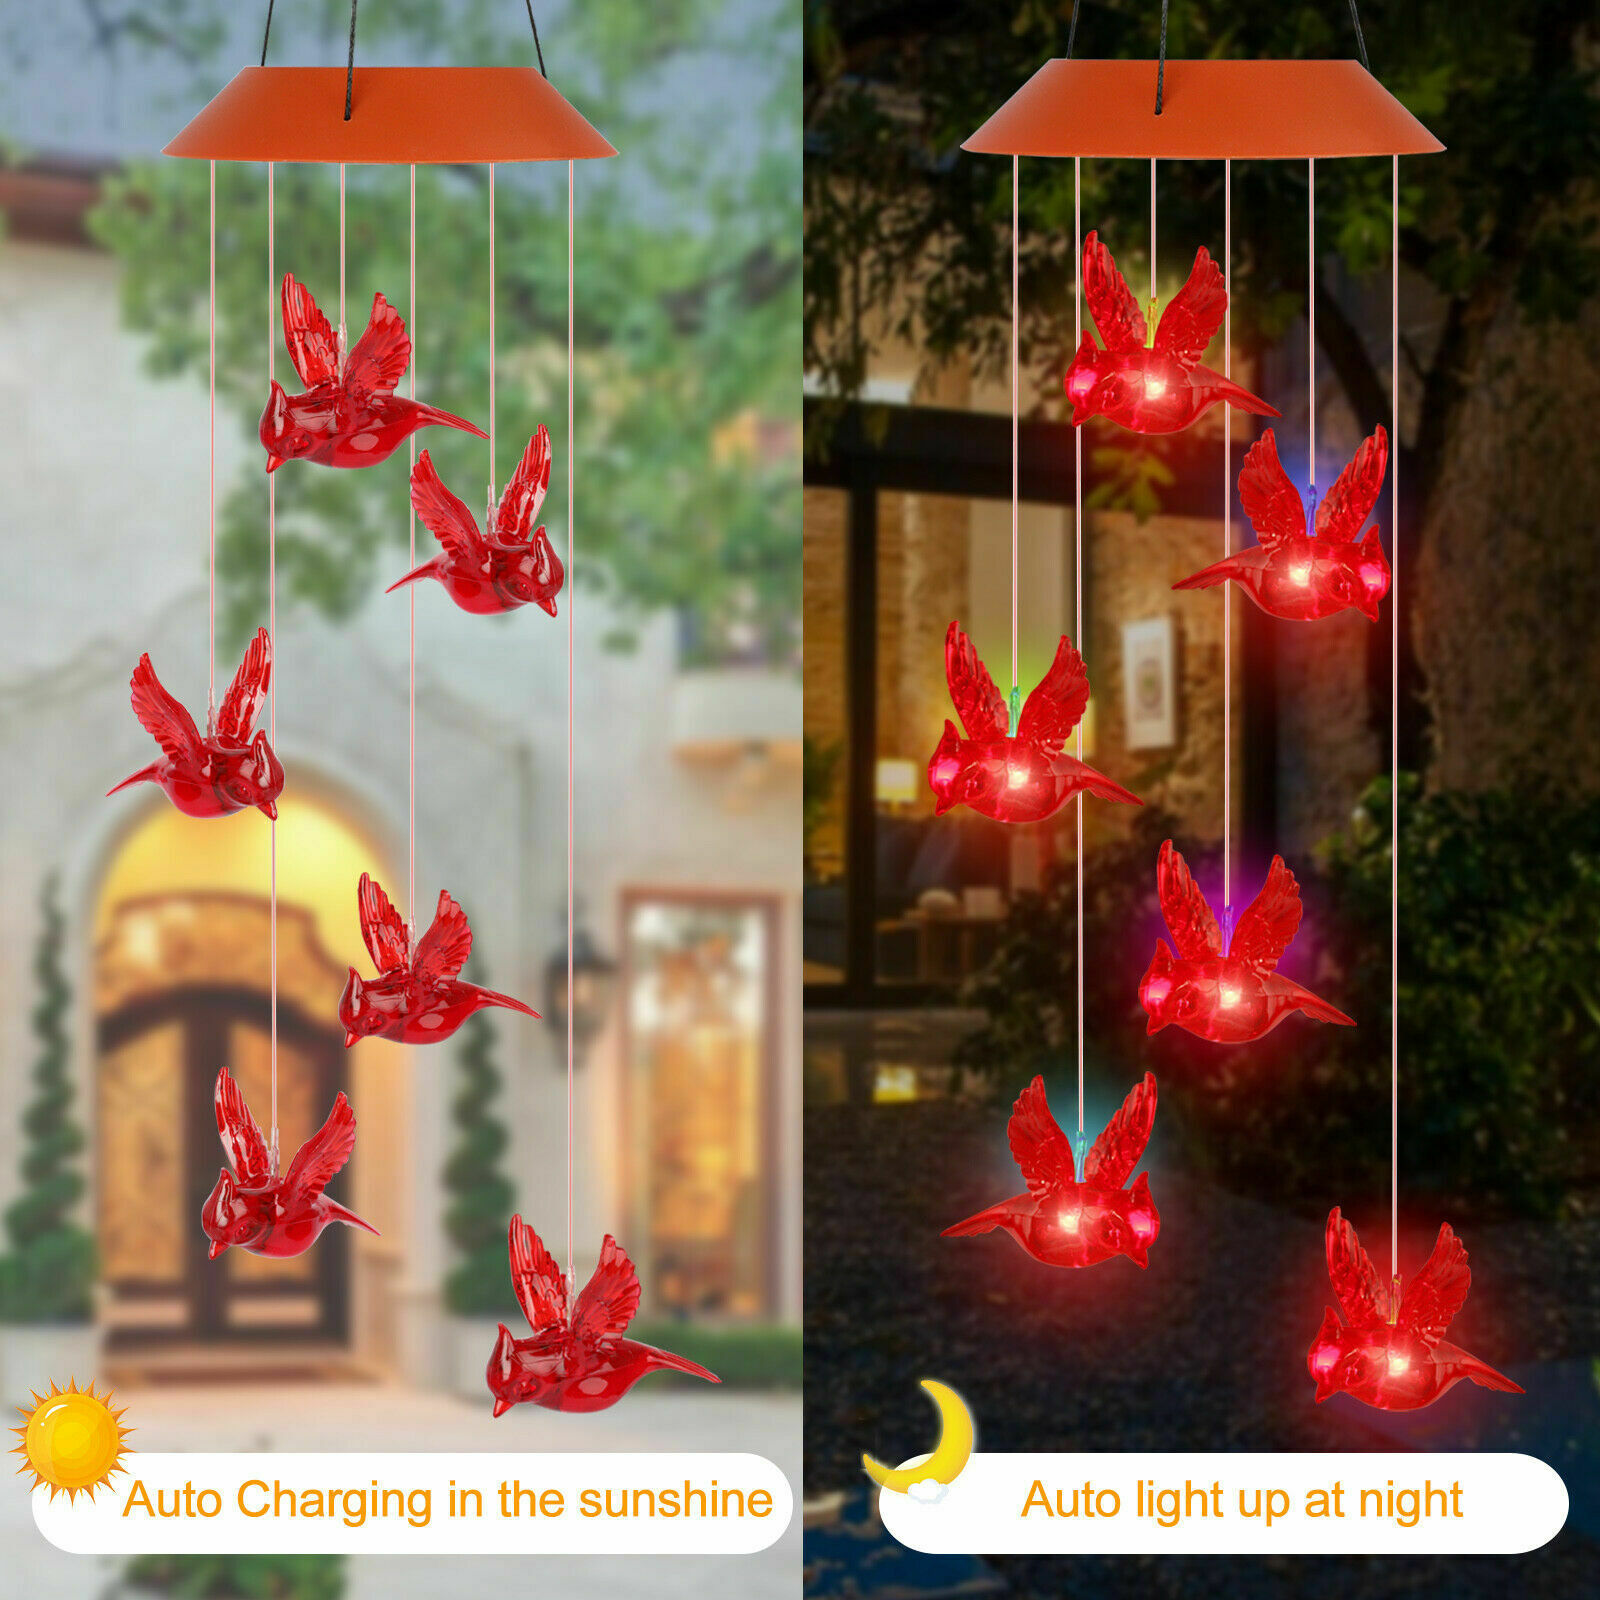 LED Solar Powered Red Cardinal Bird Wind Chime Color-Changing Light Yard Decor